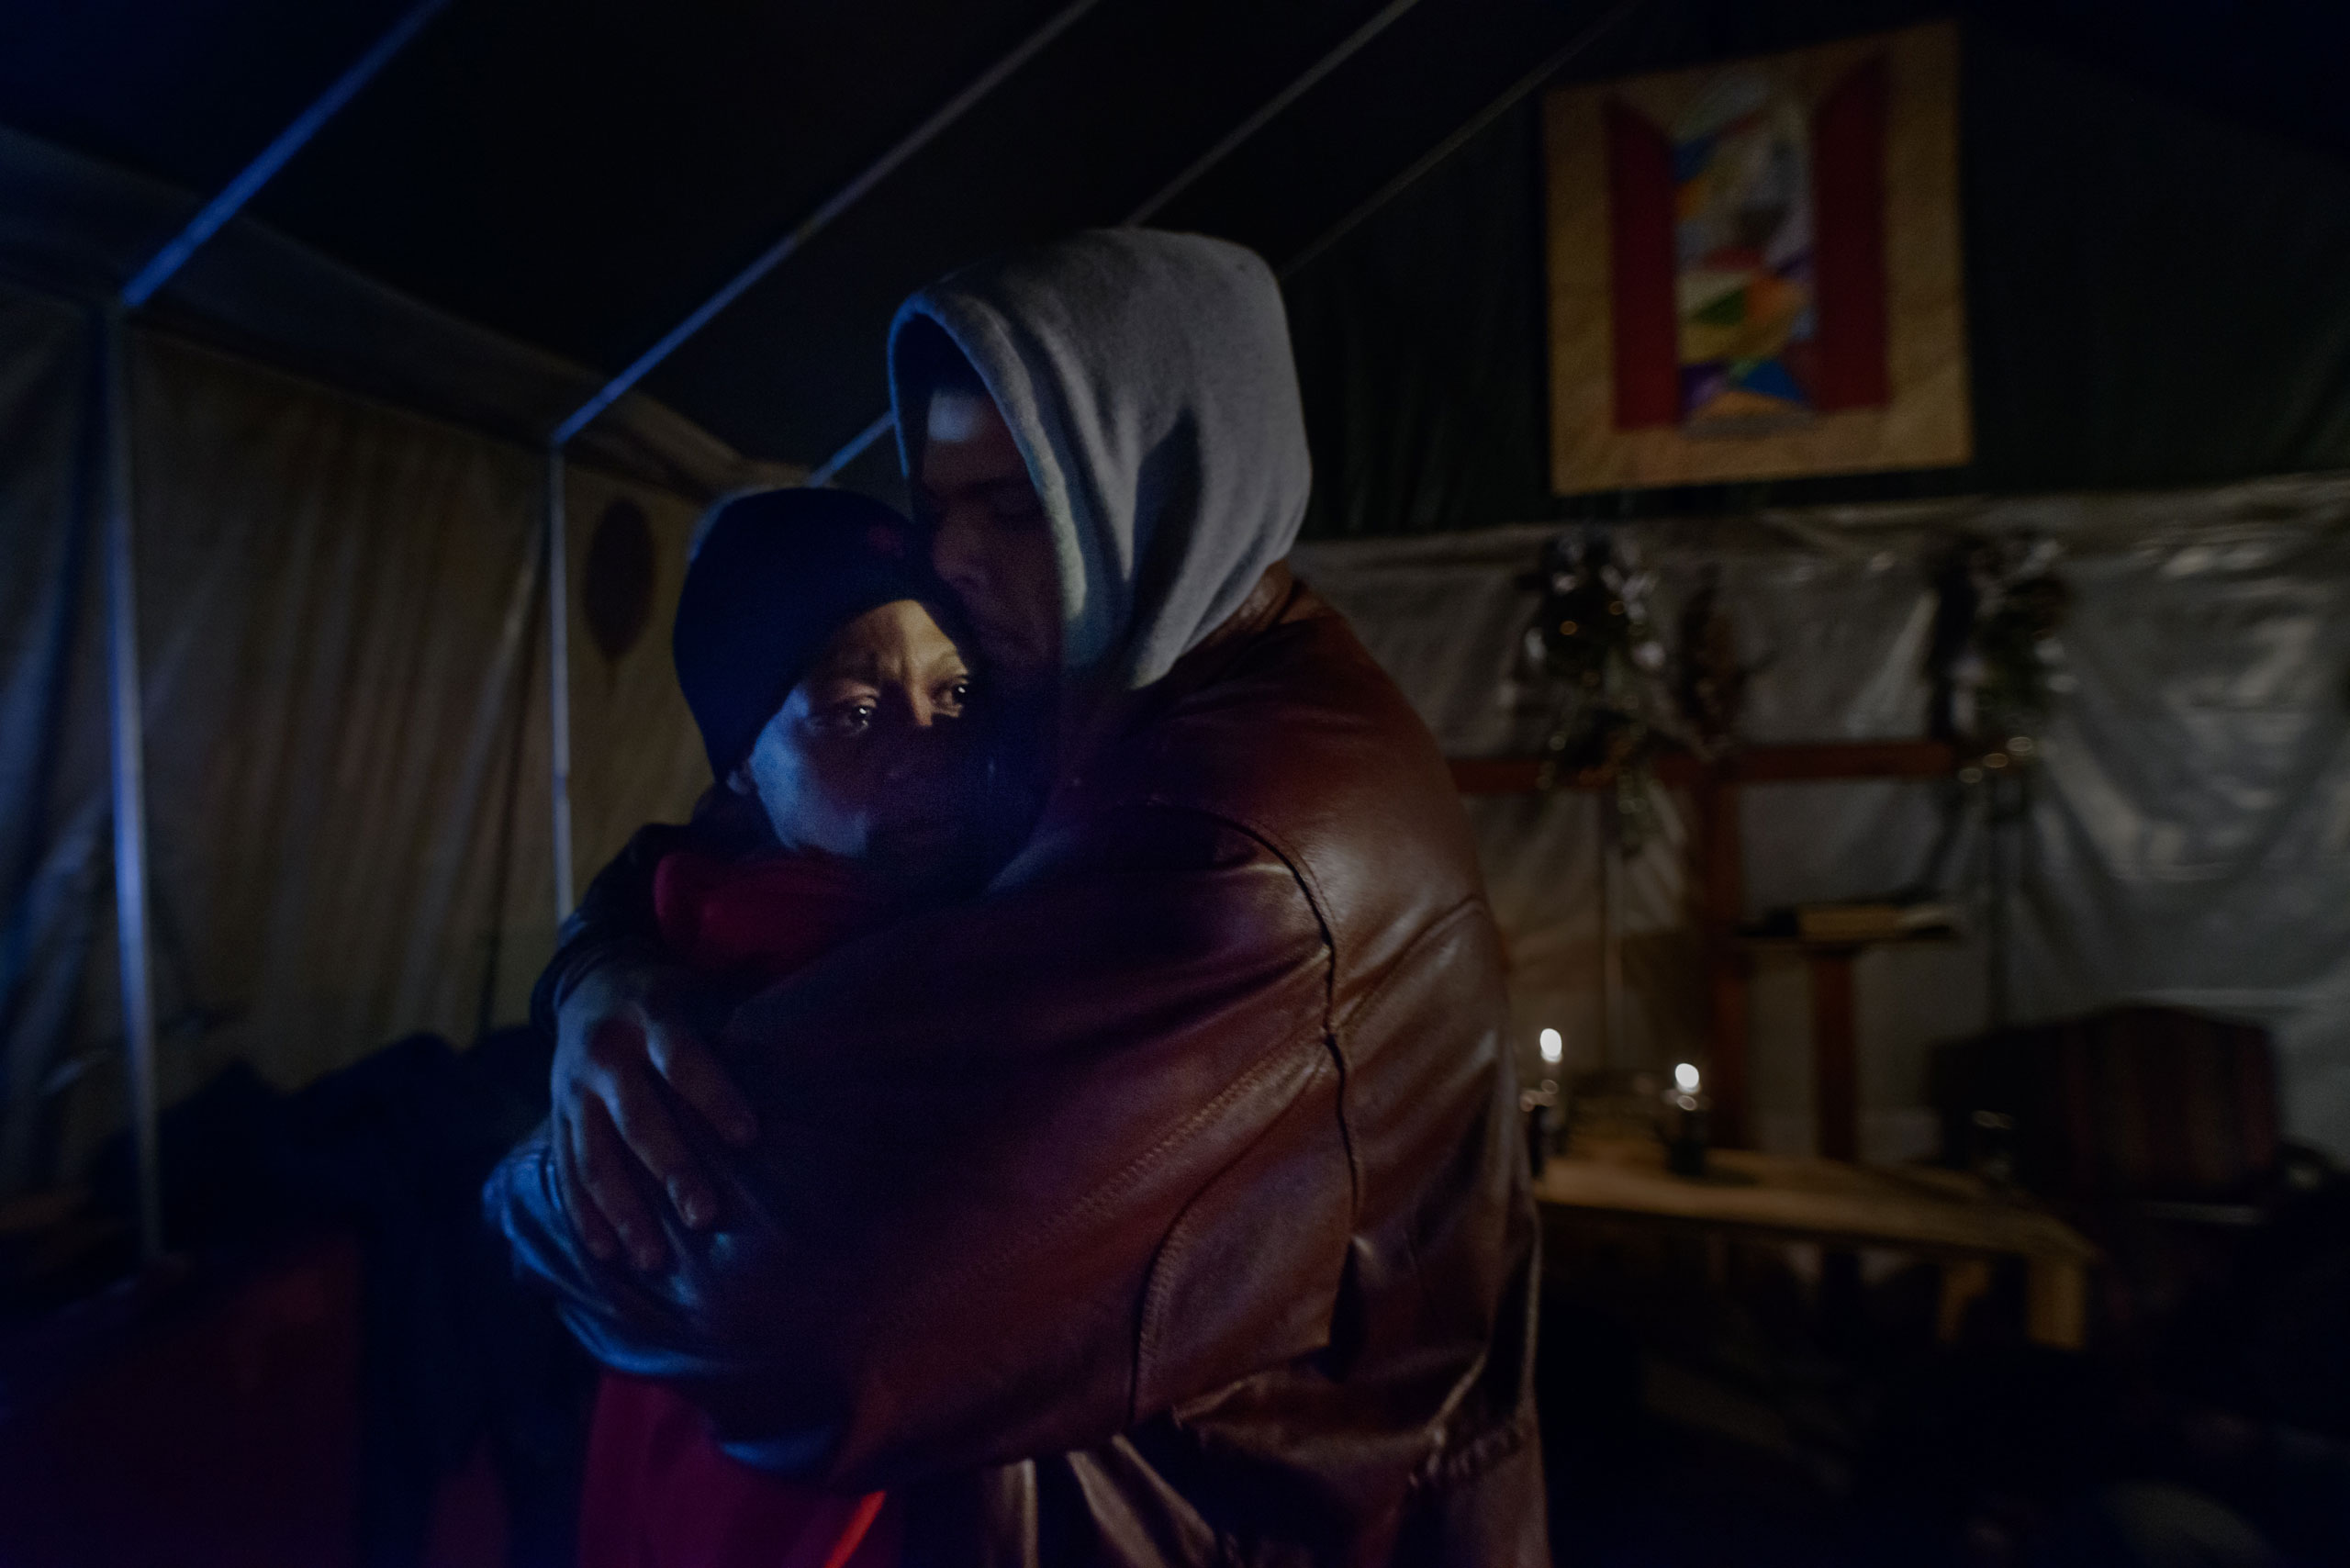 Inside Tent City's chapel, Chris consoles his wife Eve after an argument, March 14, 2014.